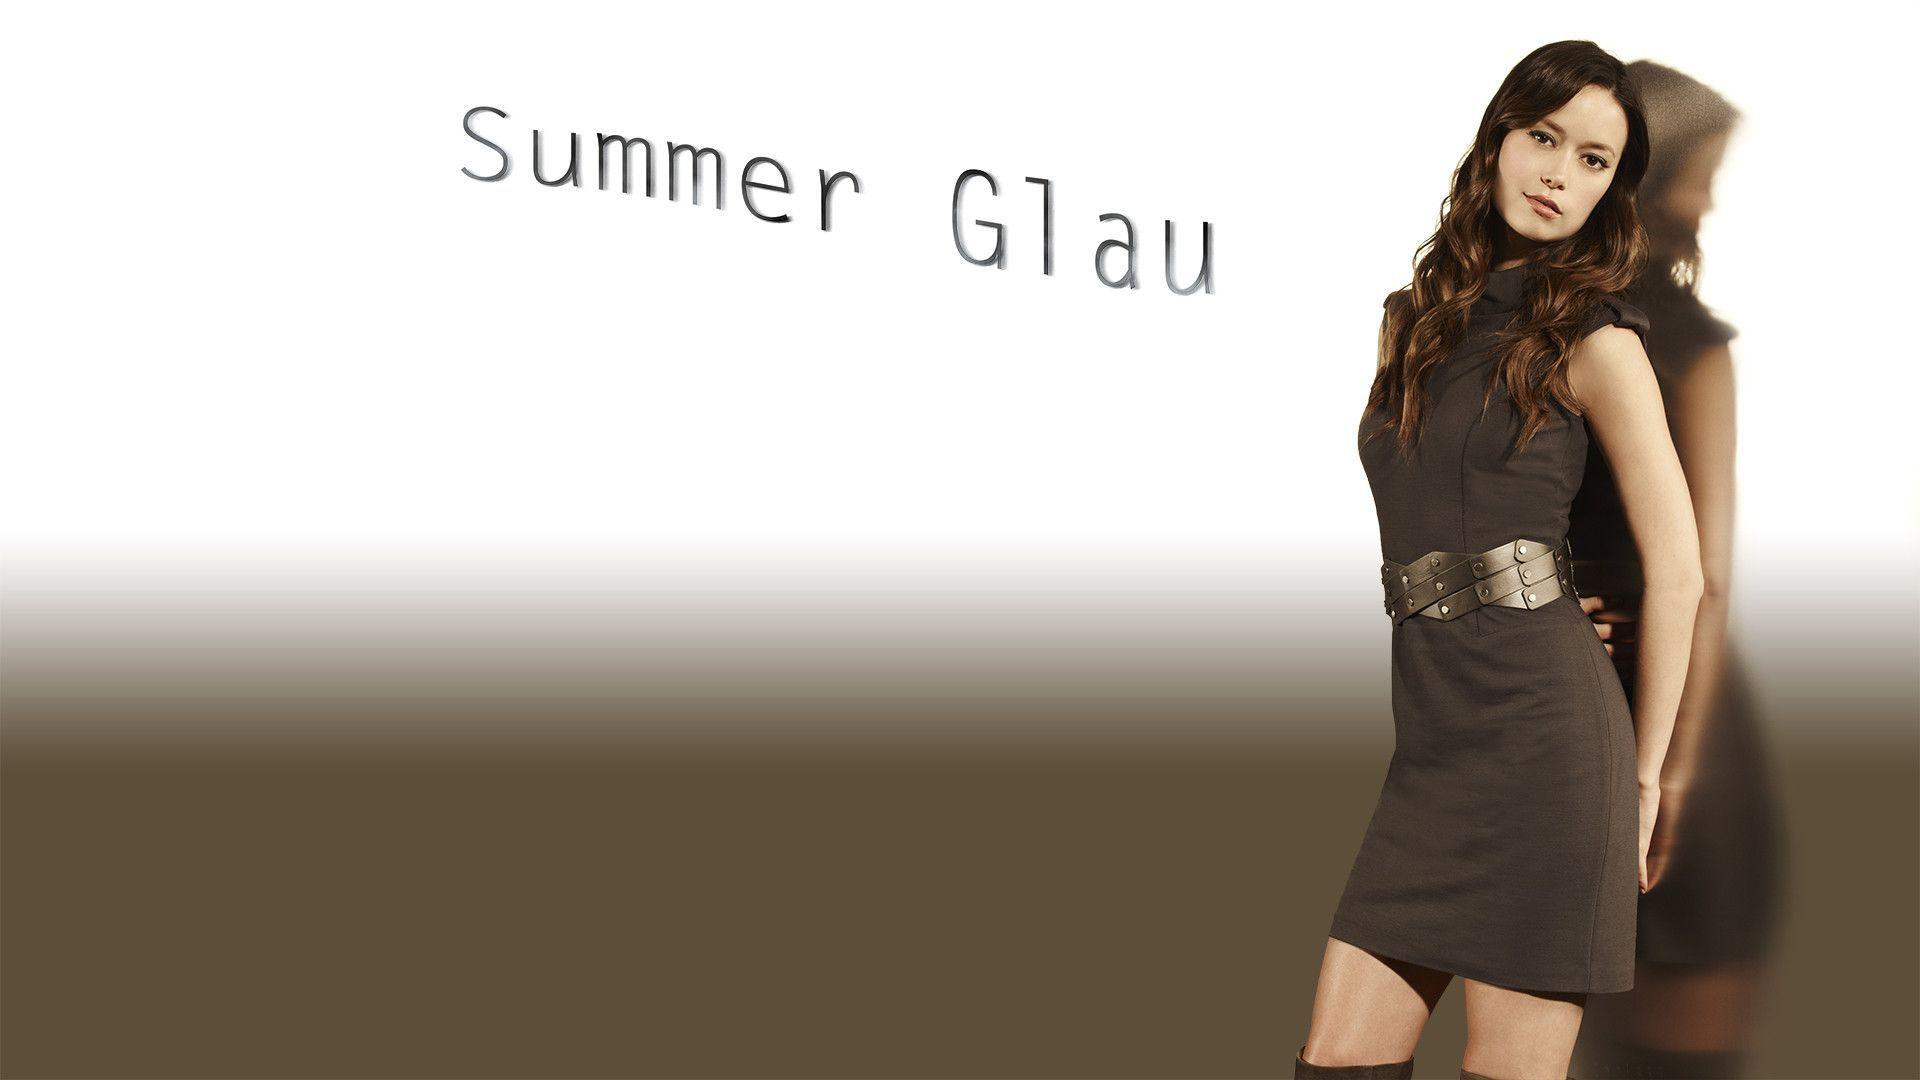 Summer Glau Wallpapers High Resolution and Quality Download